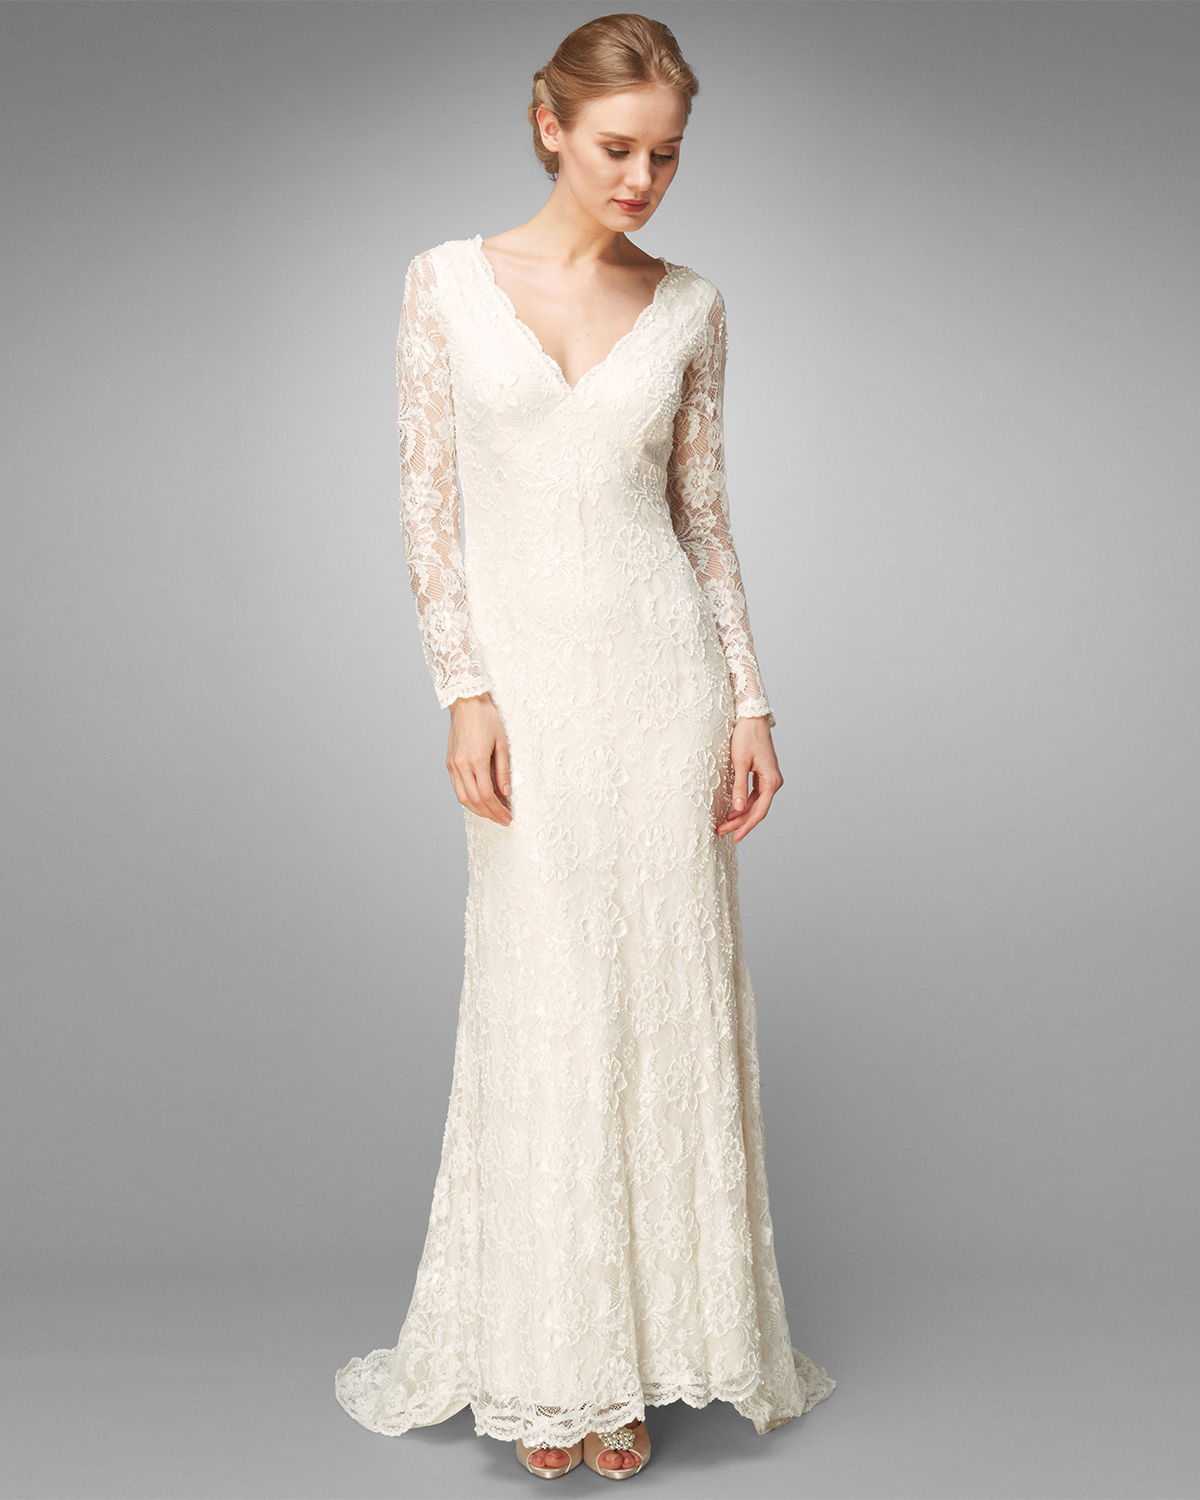 Phase eight wedding dress 17 fashionbride 39 s weblog for Phase eight wedding dresses